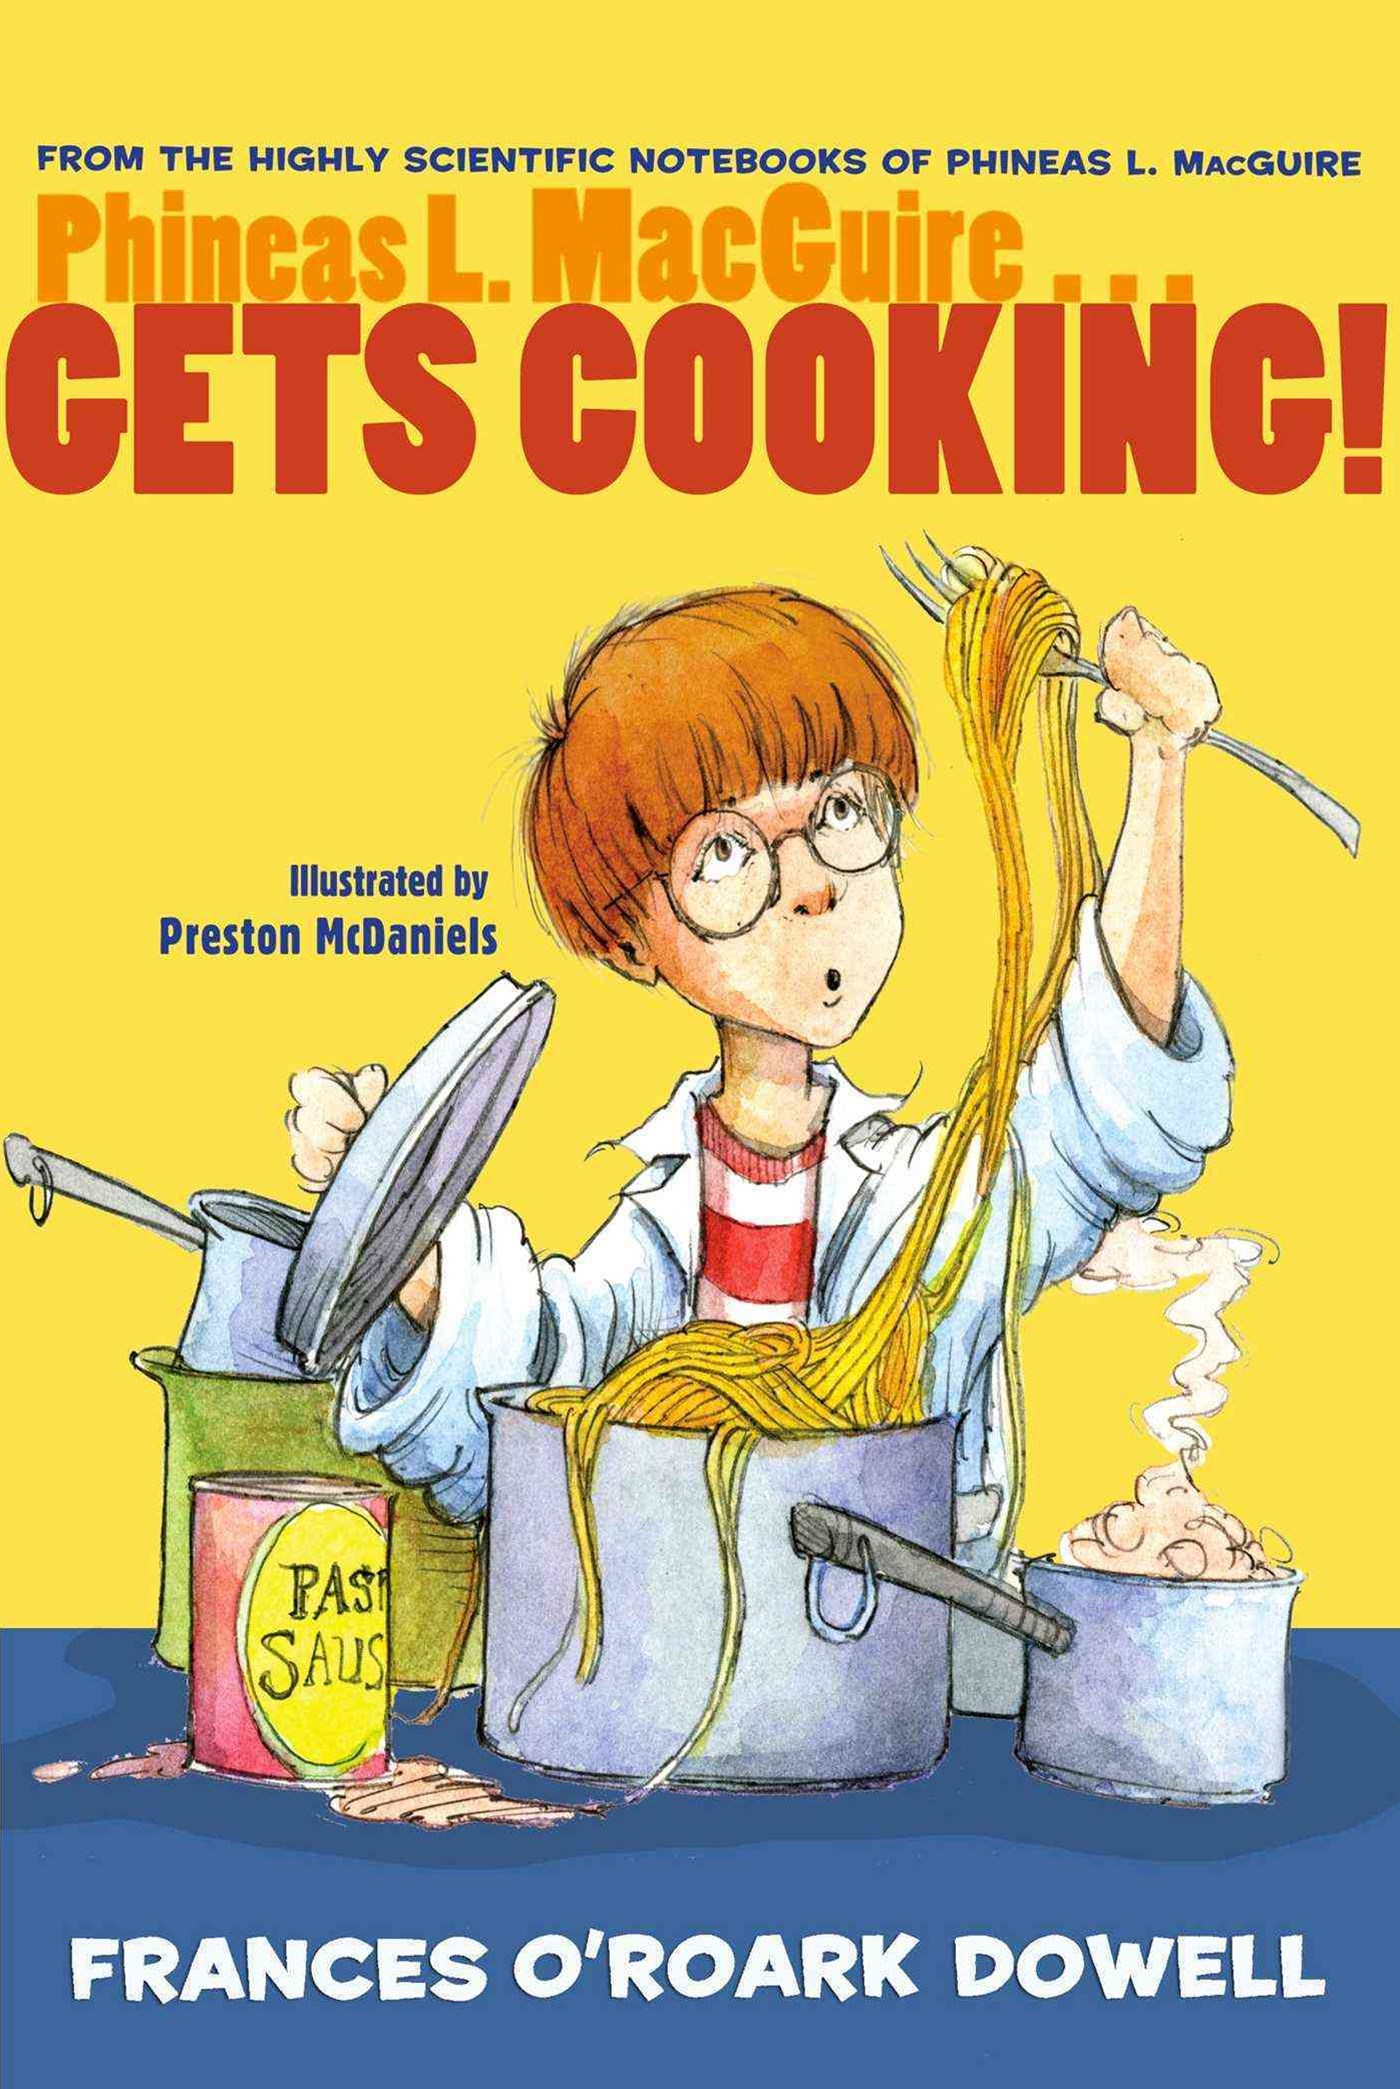 Phineas L. Macguire... Gets Cooking!